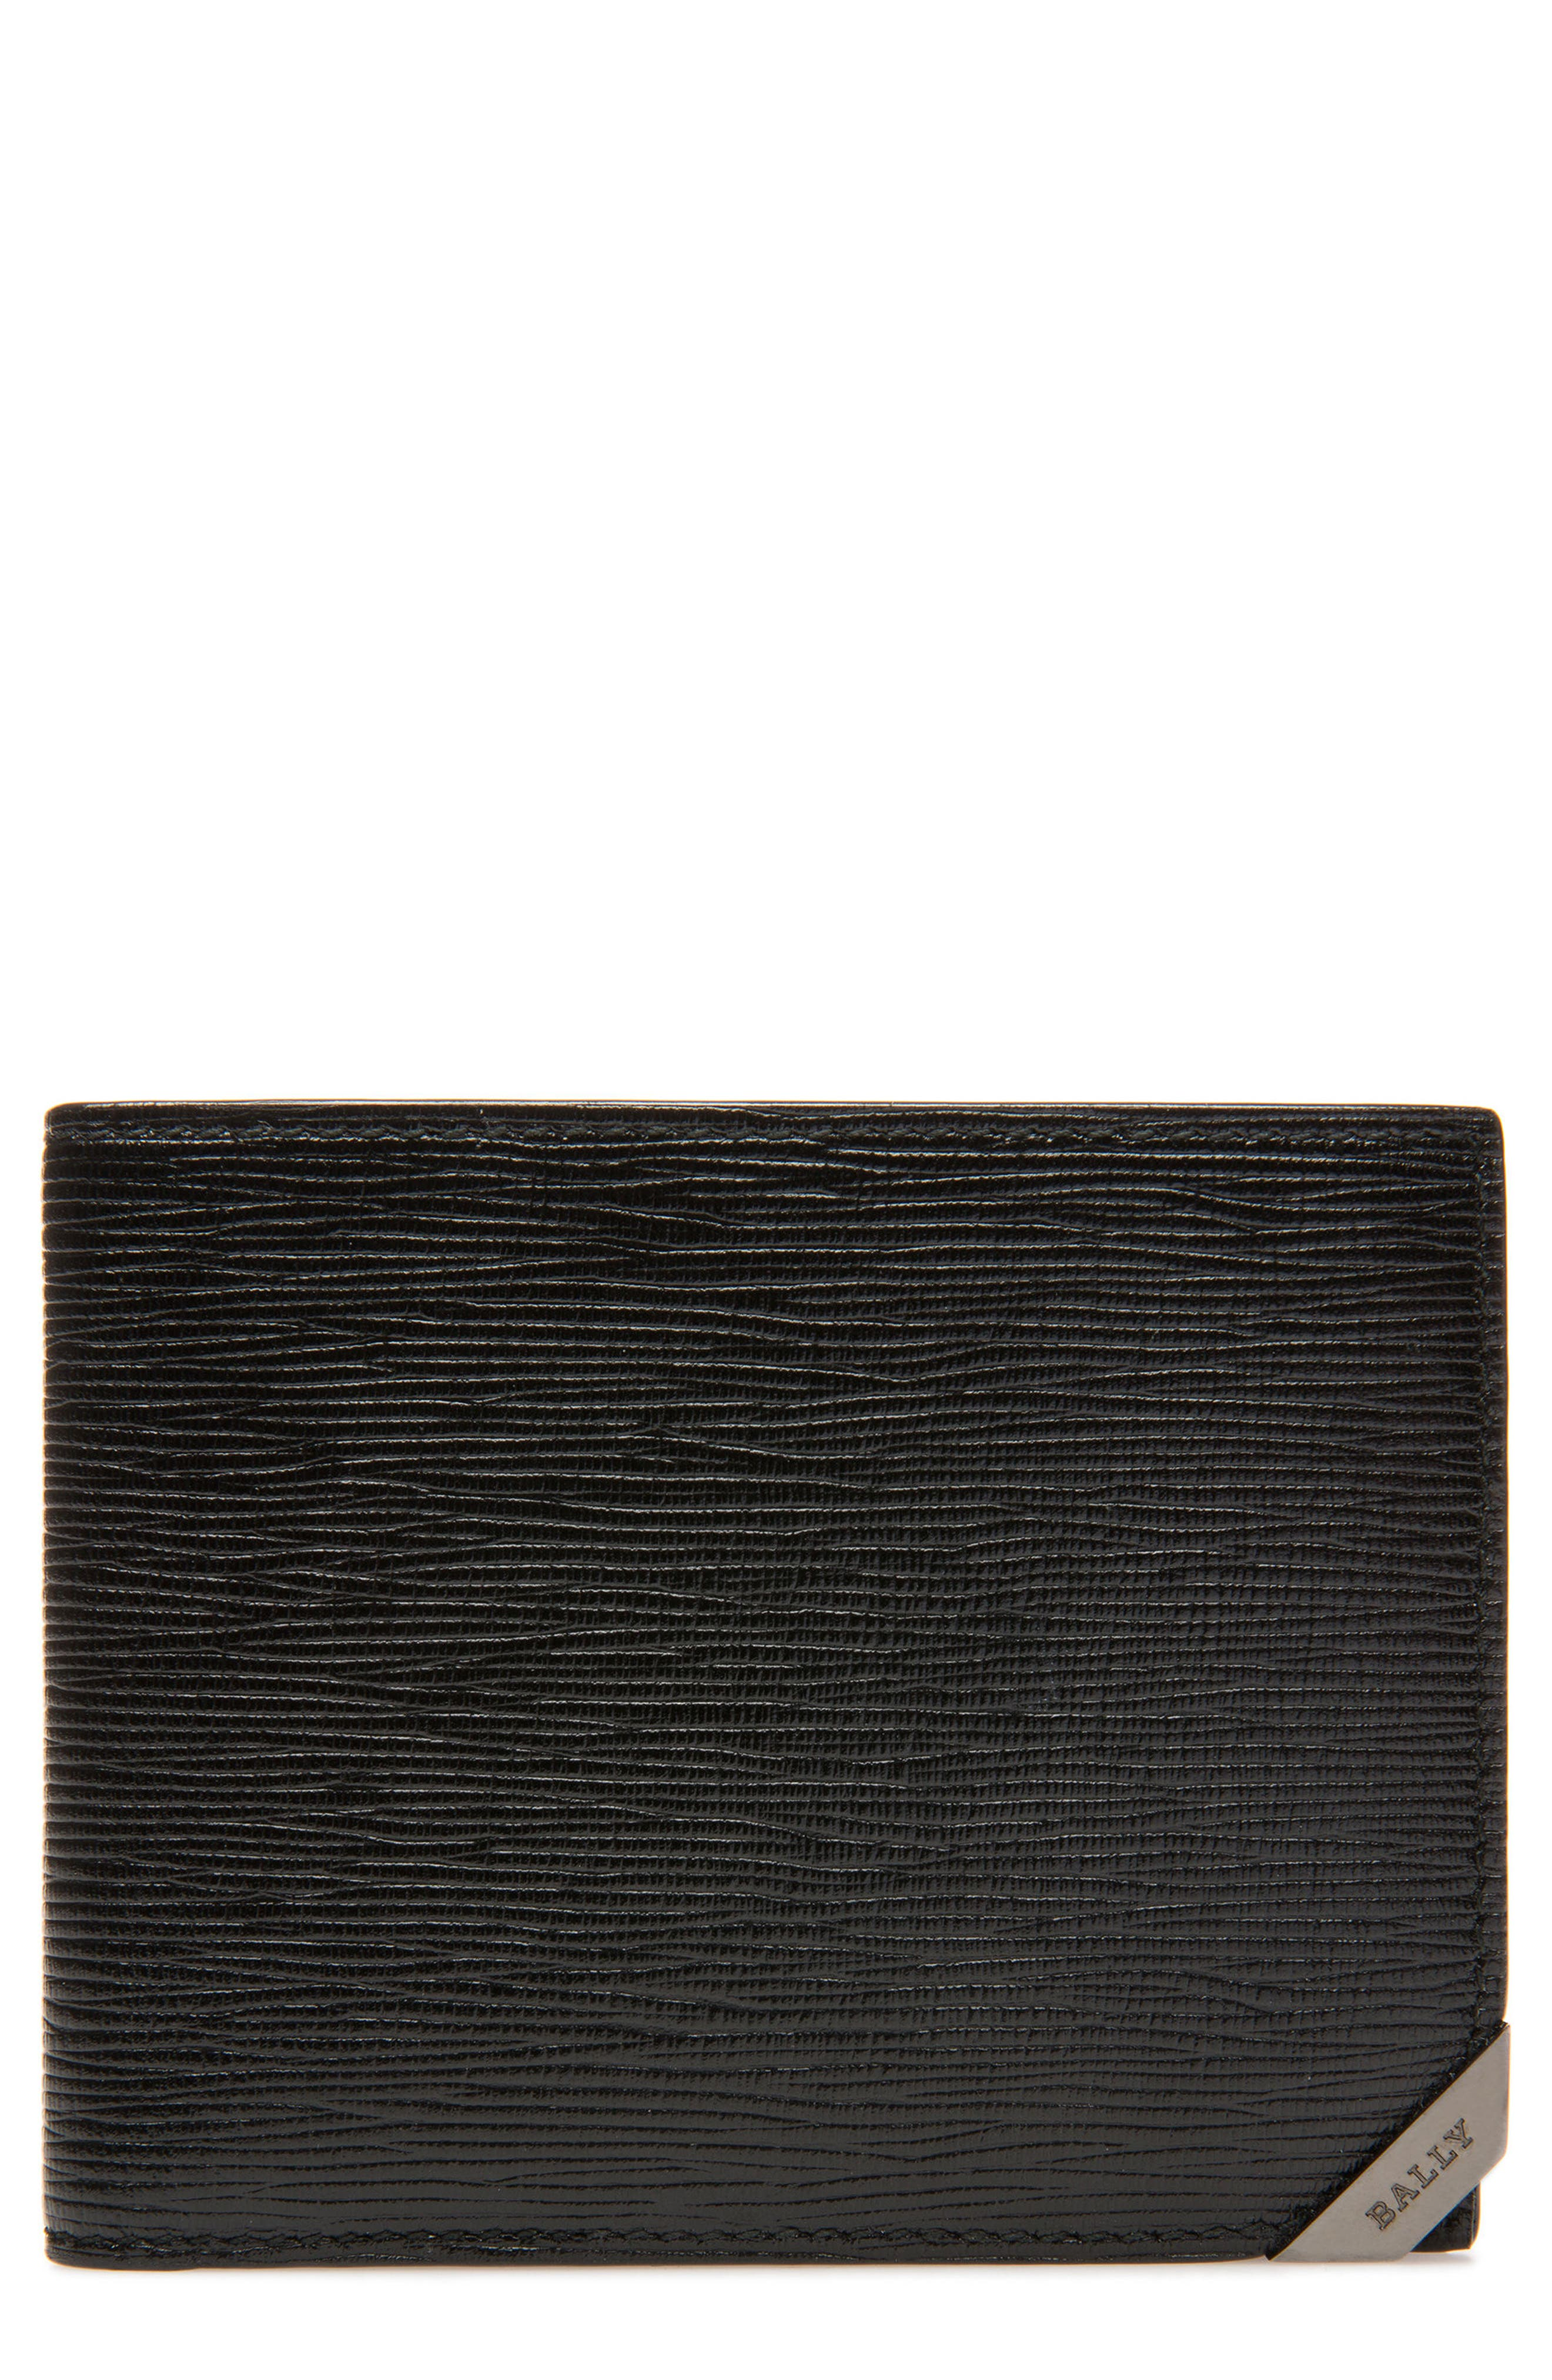 Bevye Leather Wallet,                             Main thumbnail 1, color,                             001